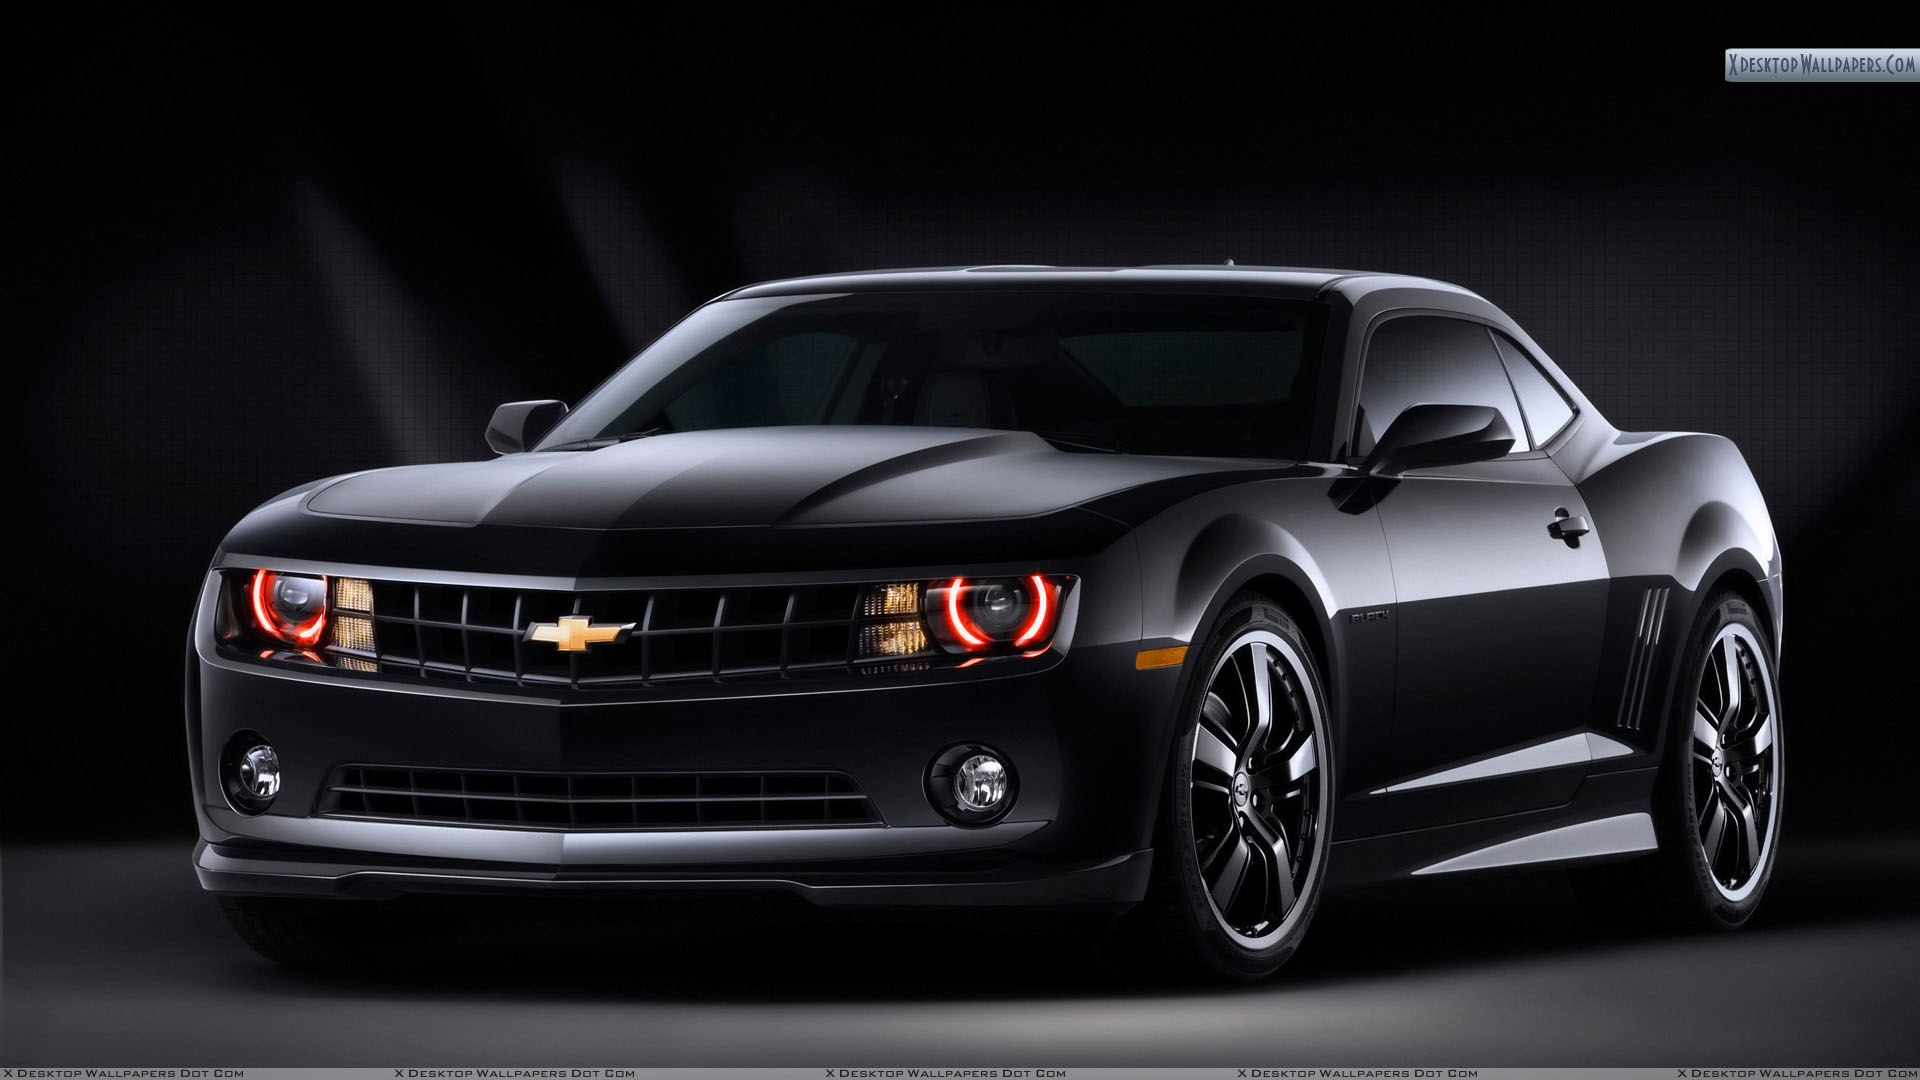 Chevrolet Wallpapers Photos Images In HD